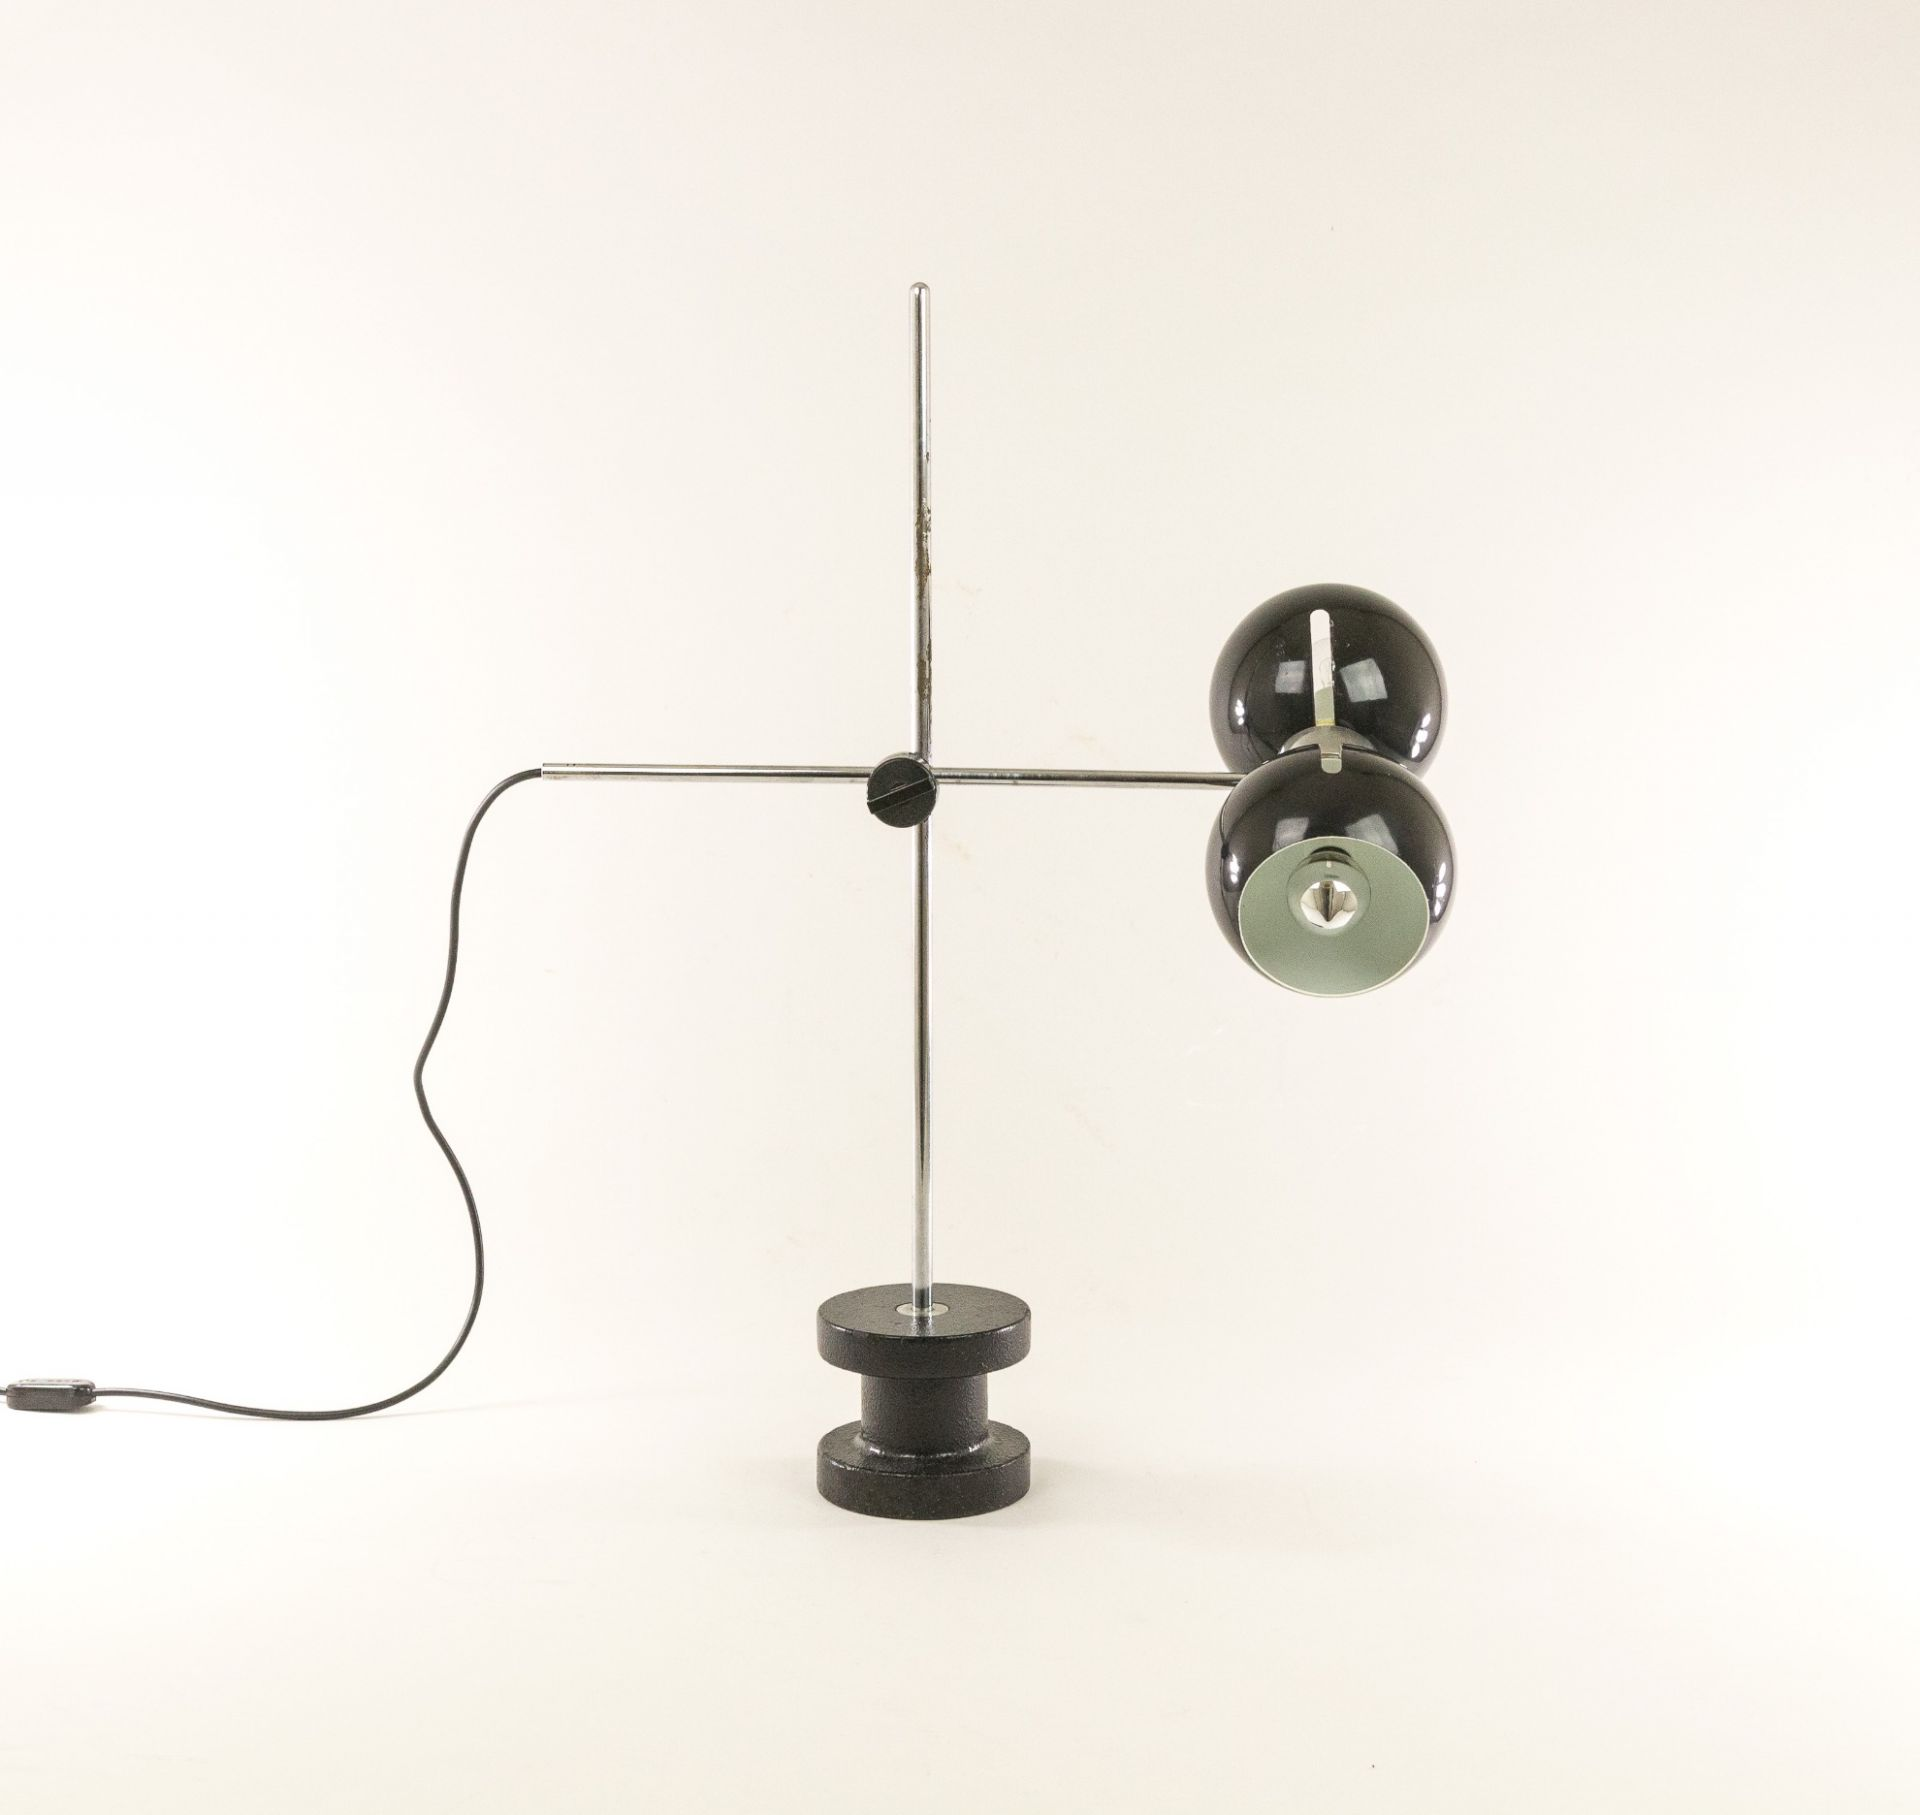 Adjustable table lamp with heavy cast iron base by Valenti, 1970s